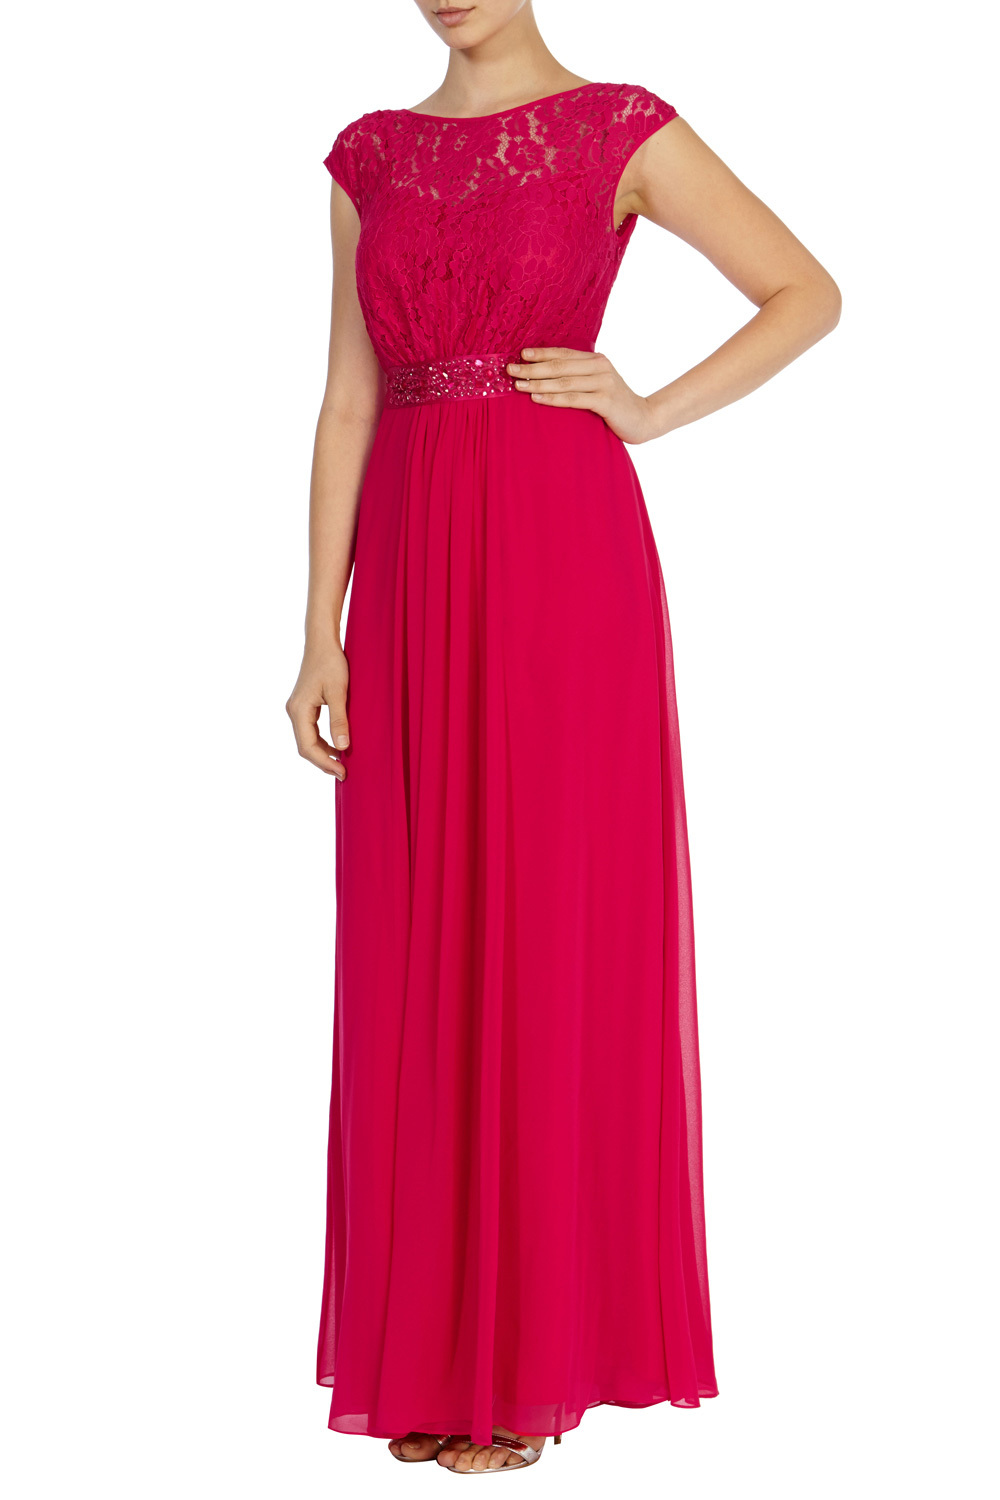 Lori Lee Lace Maxi Dress - sleeve style: capped; pattern: plain; style: maxi dress; bust detail: sheer at bust; predominant colour: hot pink; occasions: evening; length: floor length; fit: body skimming; fibres: polyester/polyamide - 100%; neckline: crew; sleeve length: short sleeve; pattern type: fabric; texture group: other - light to midweight; embellishment: lace; season: s/s 2016; wardrobe: event